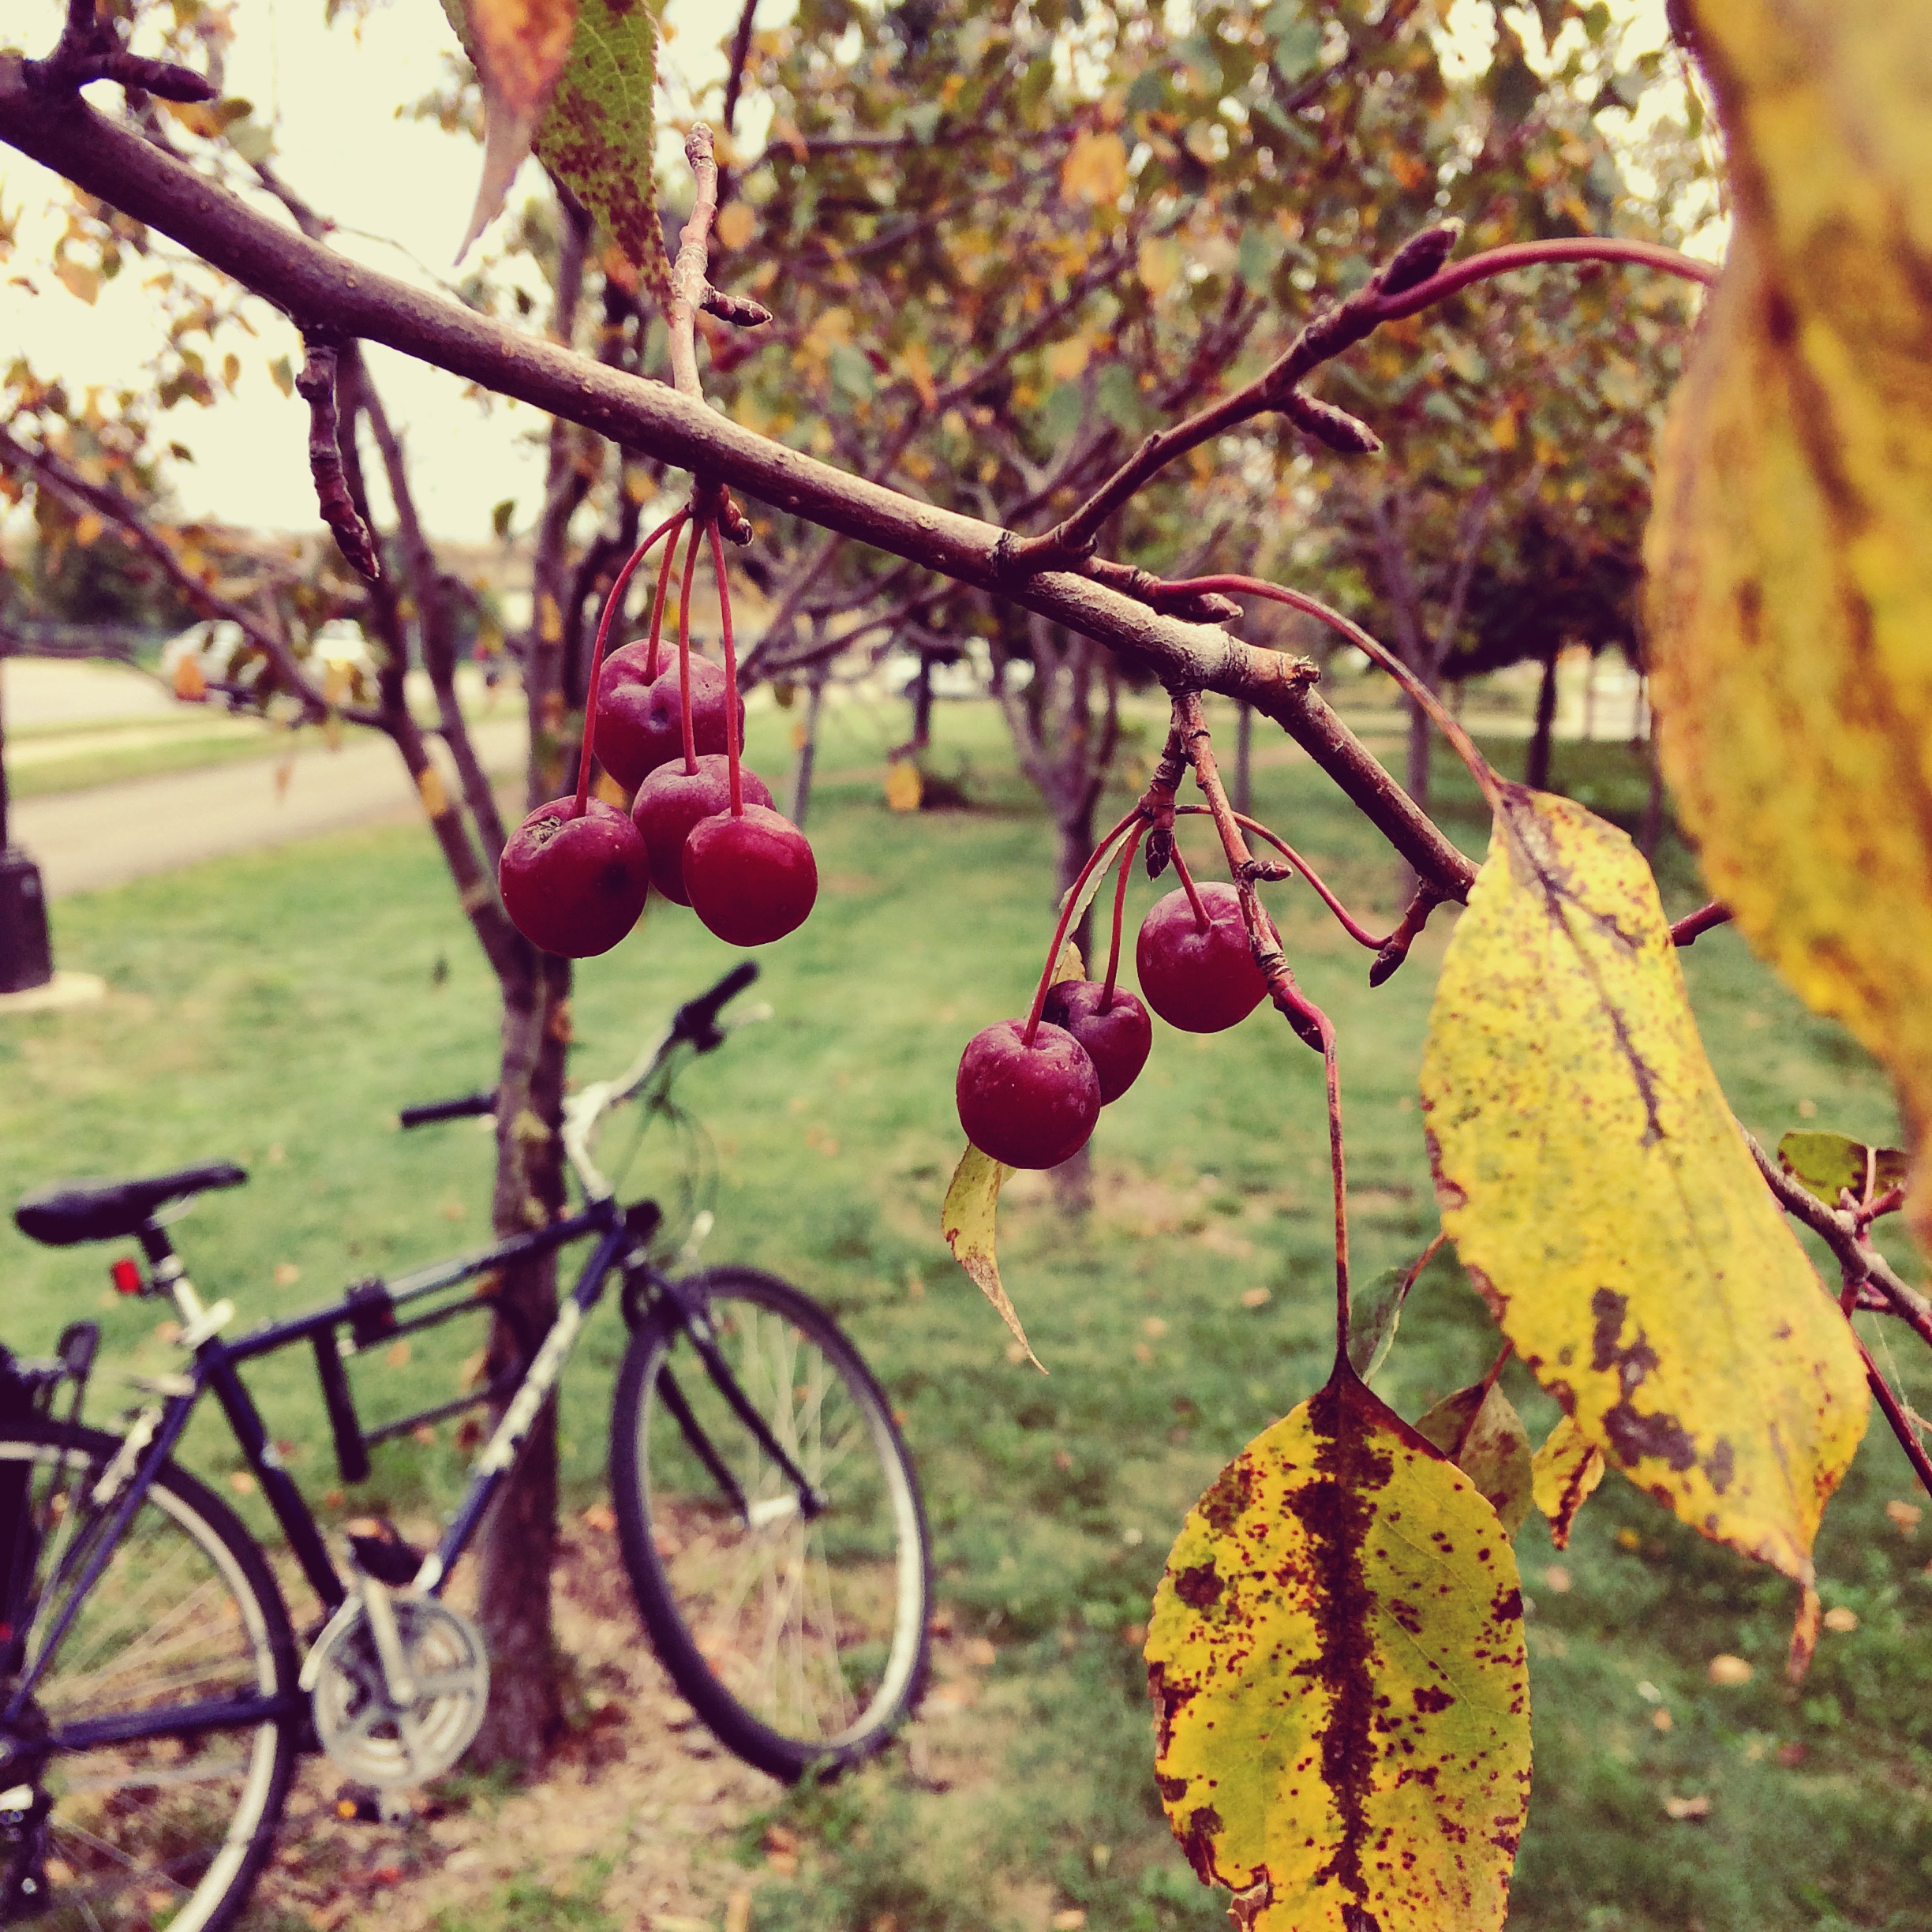 Picking crab apples along the Midtown Greenway.